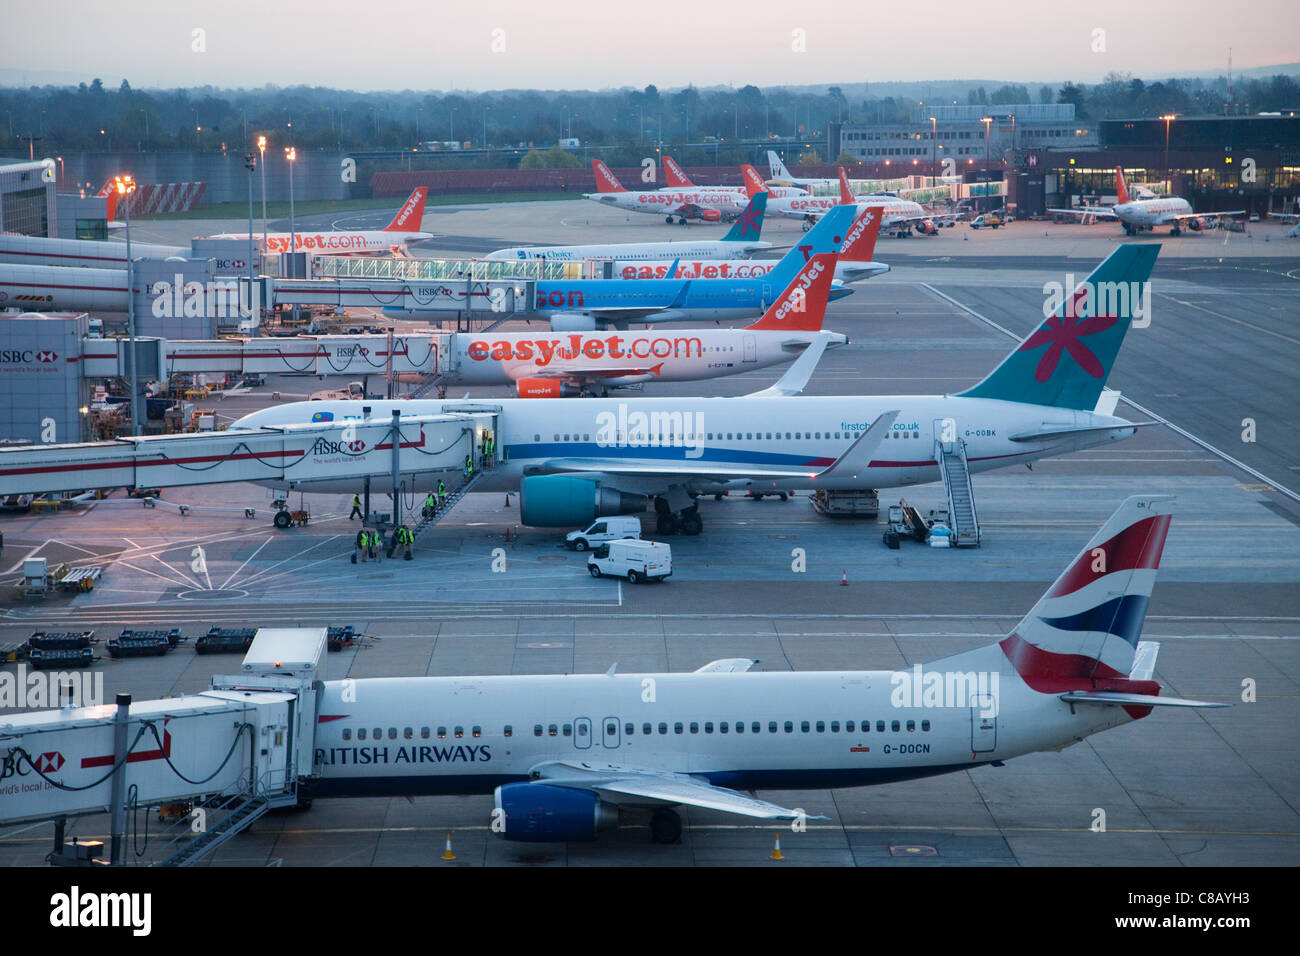 England, London, Gatwick Airport, Parked Aeroplanes - Stock Image